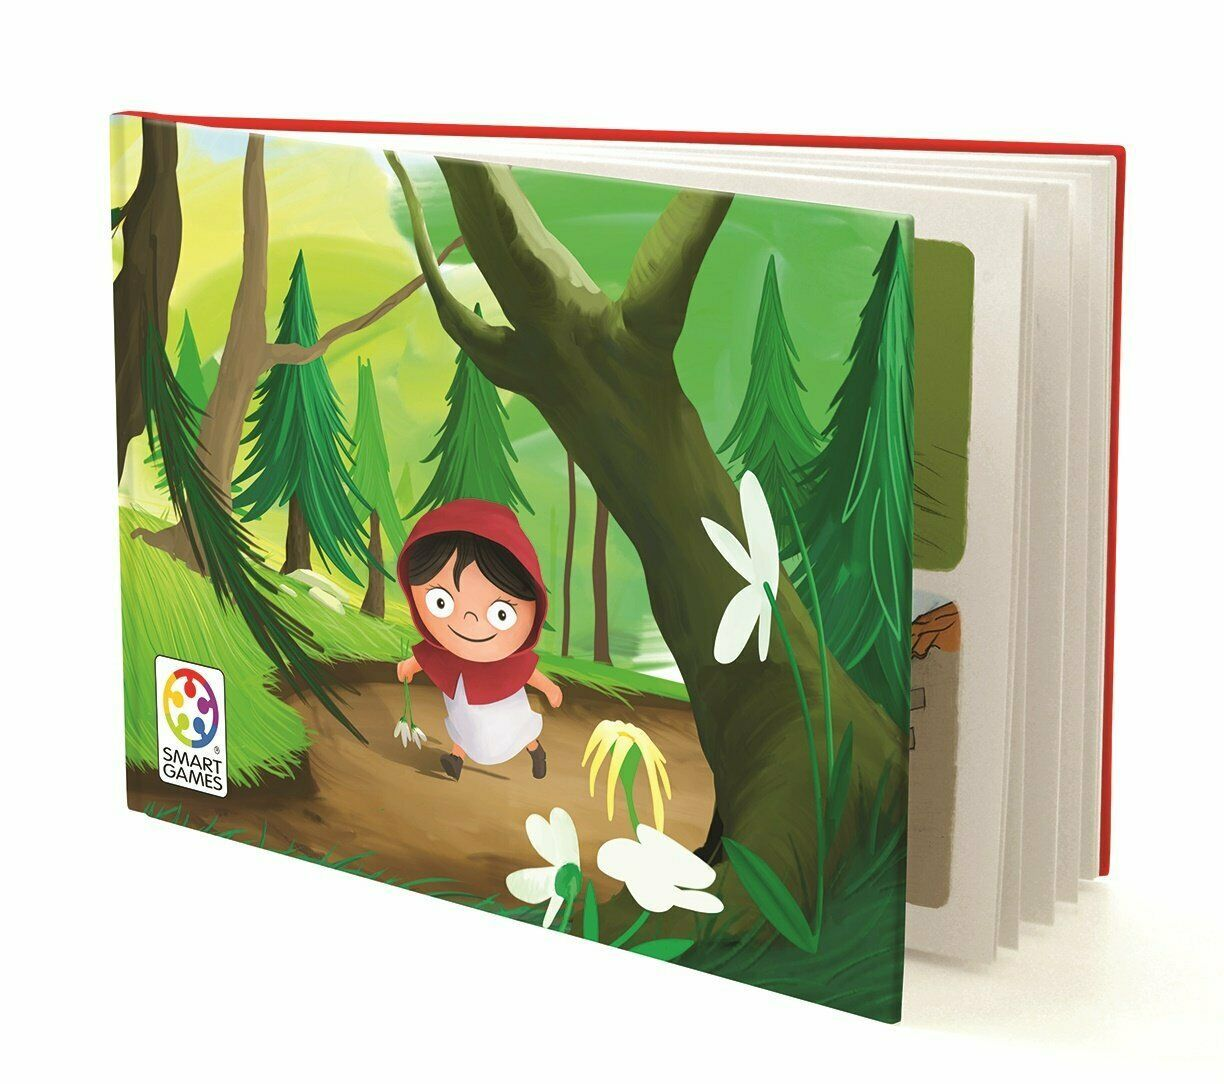 Smartgames Little Red Riding Hood A Preschool Puzzle Game